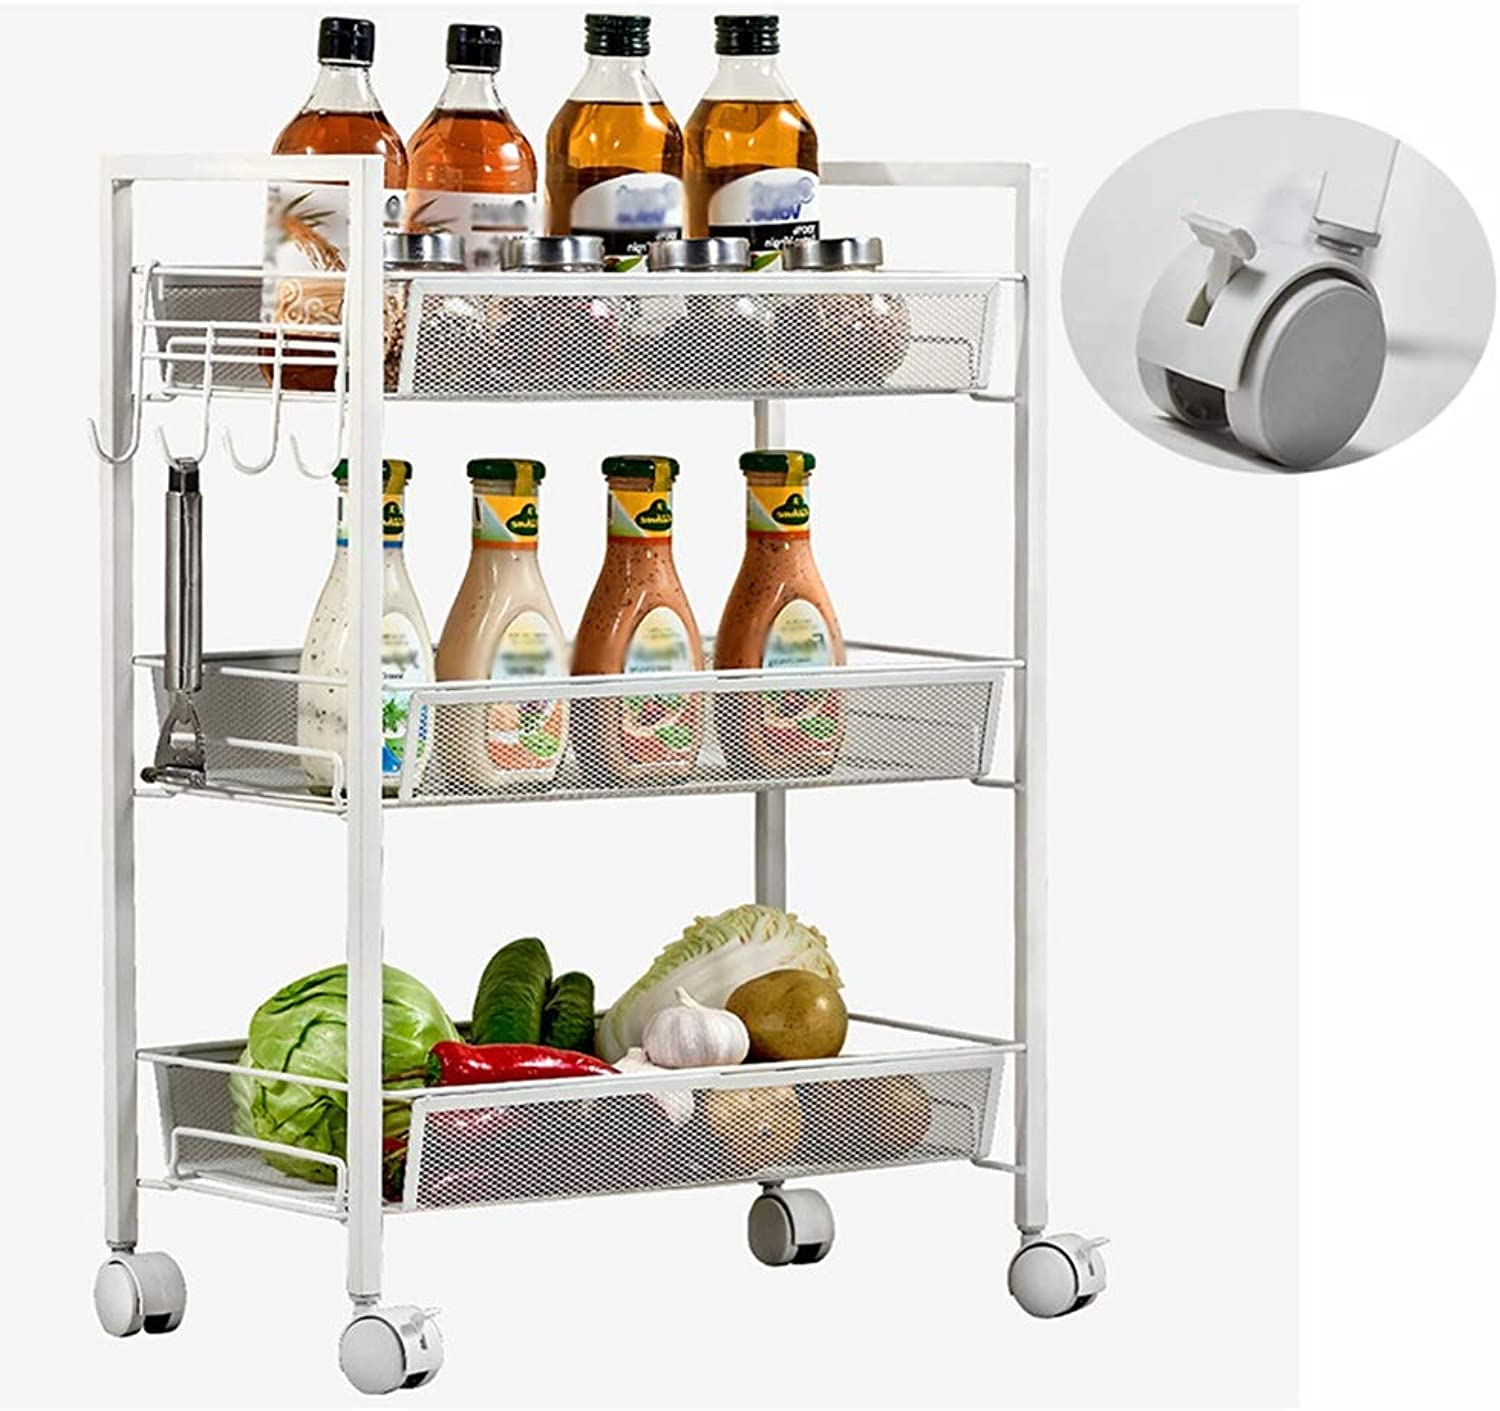 XLong-Home Trolley Rack Vegetable and Fruit Flower Pot Storage Shelf Three Floors White 45X26X63cm